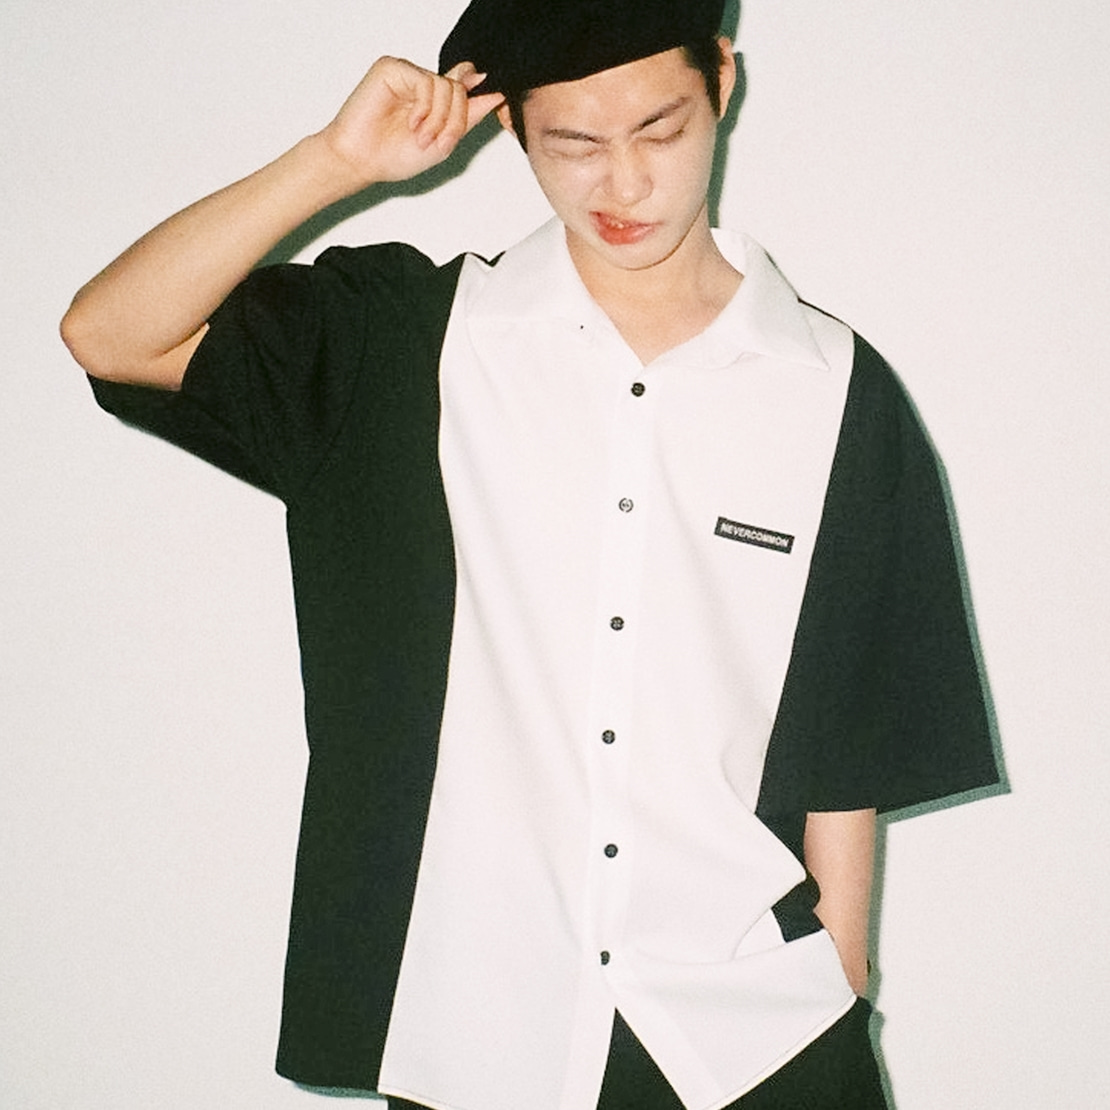 [네버커먼] Half Shirt (black/white)